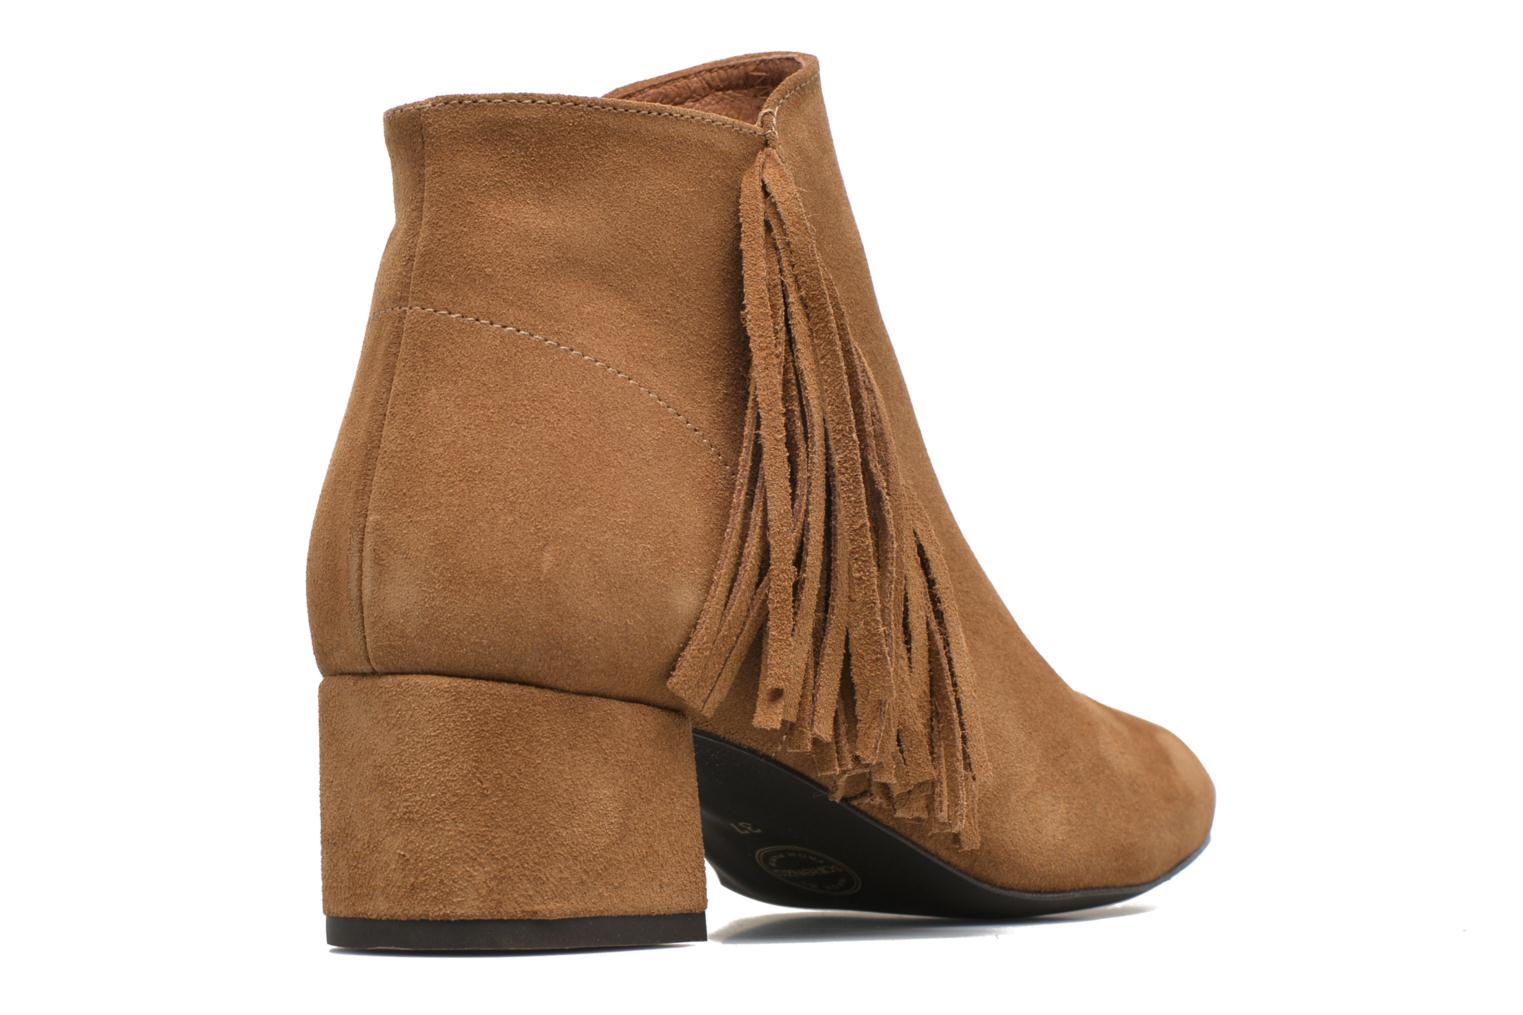 Bottines et boots Made by SARENZA See Ya Topanga #9 Marron vue face